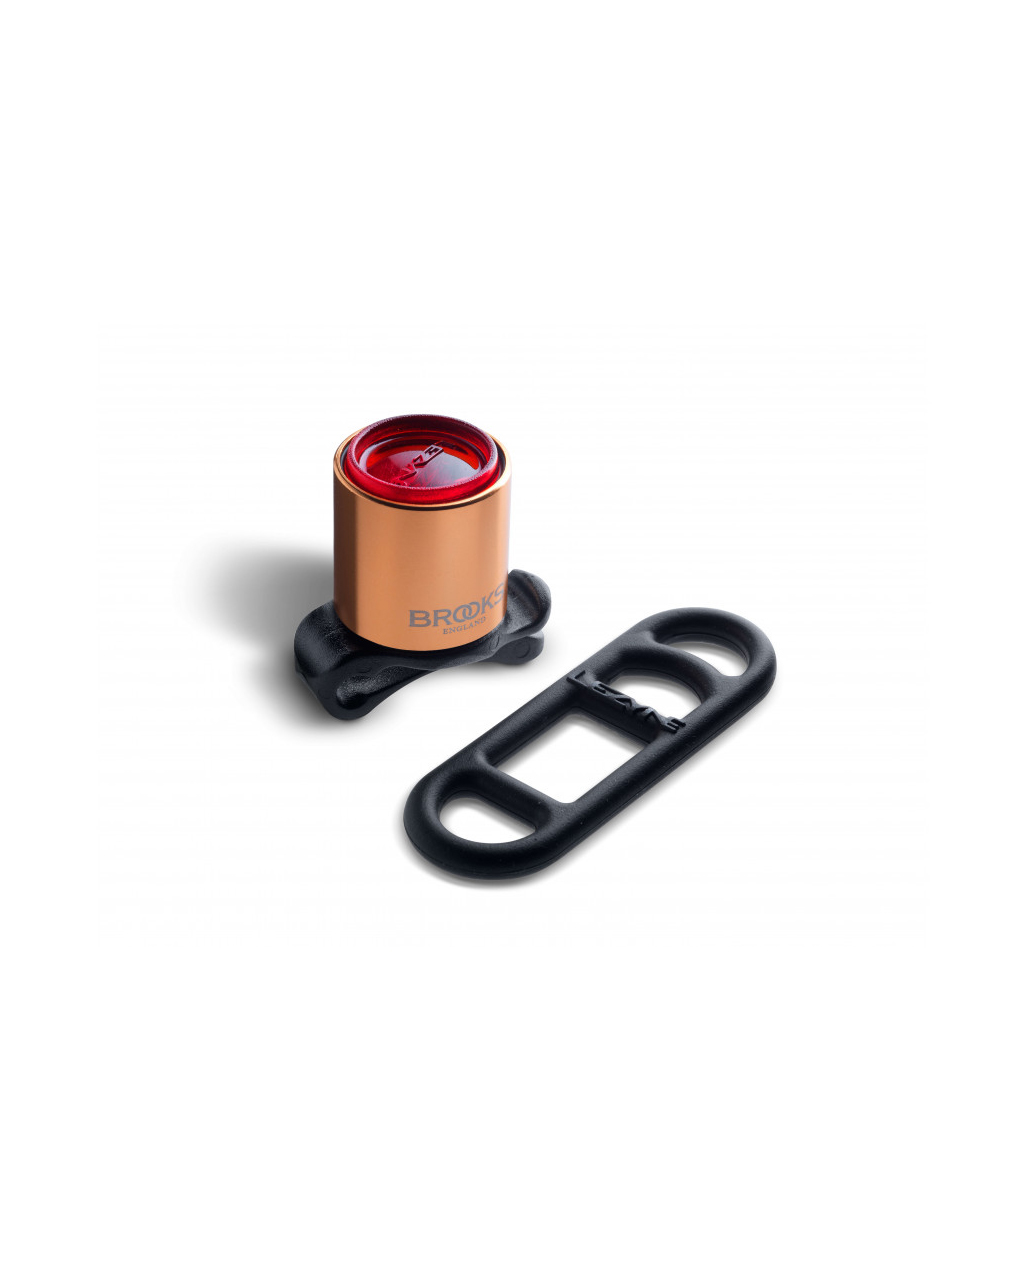 Brooks Femto Rear Light - Copper